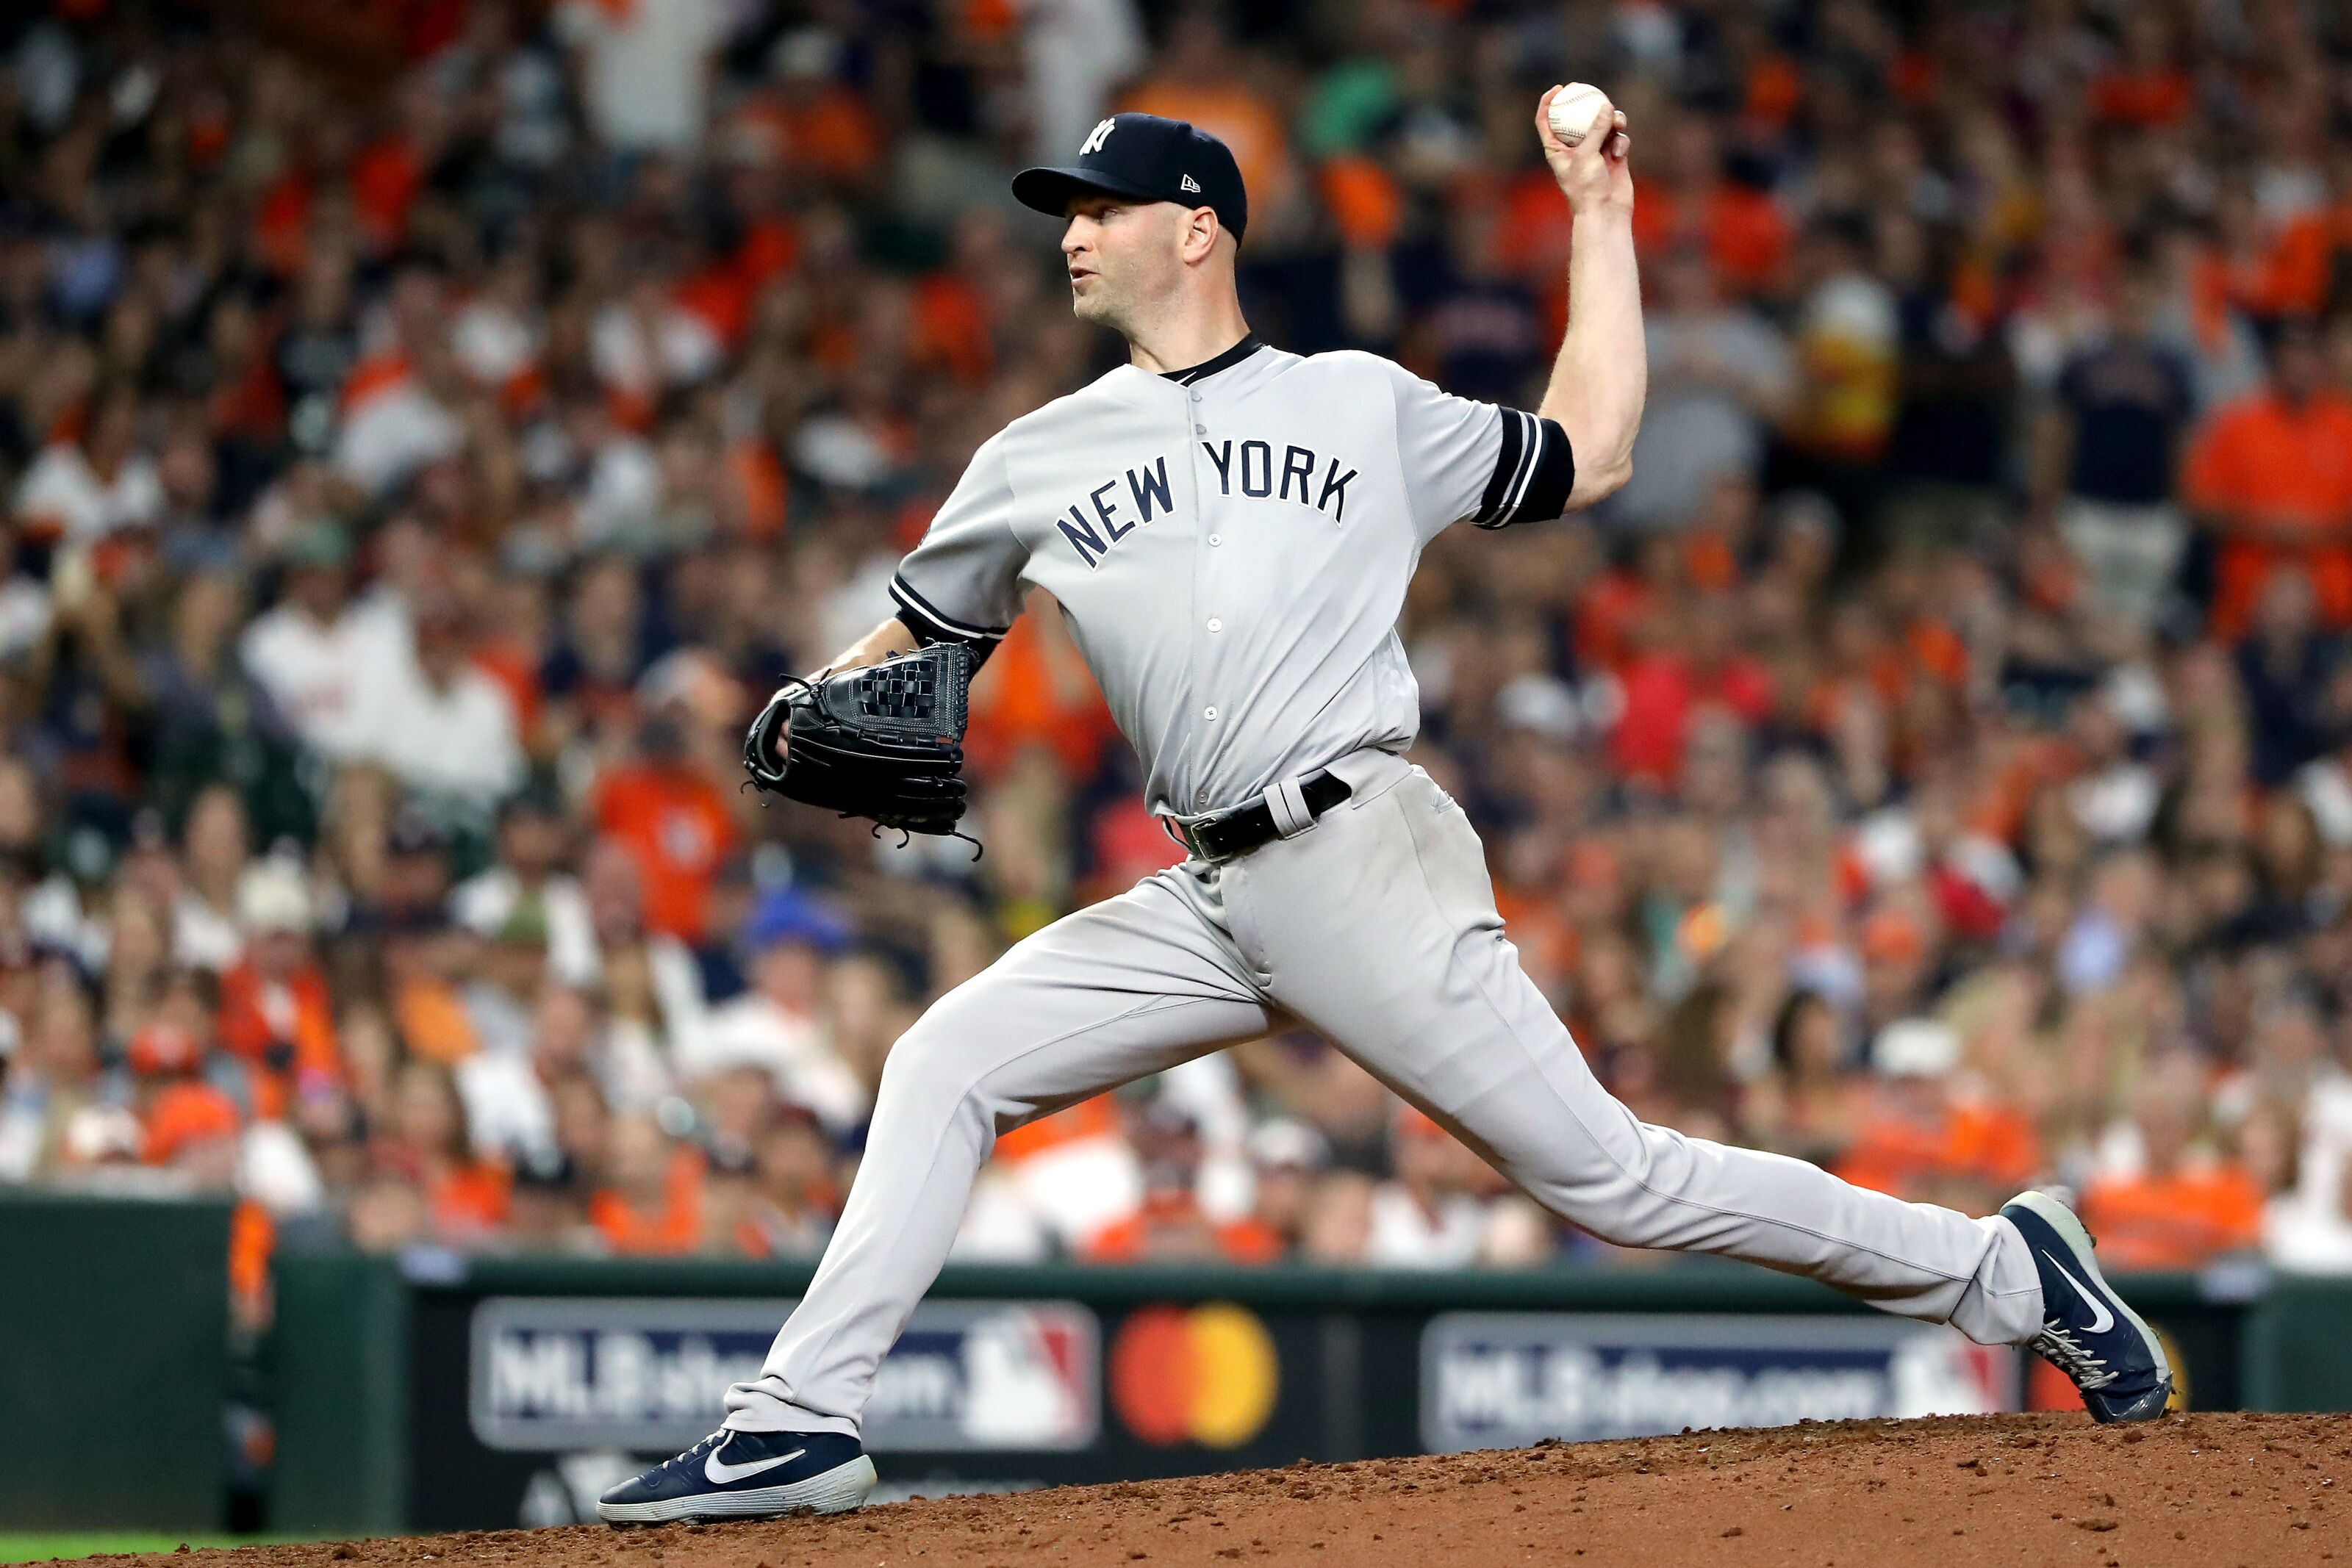 Yankees Rumors: J.A. Happ could be traded to open up payroll